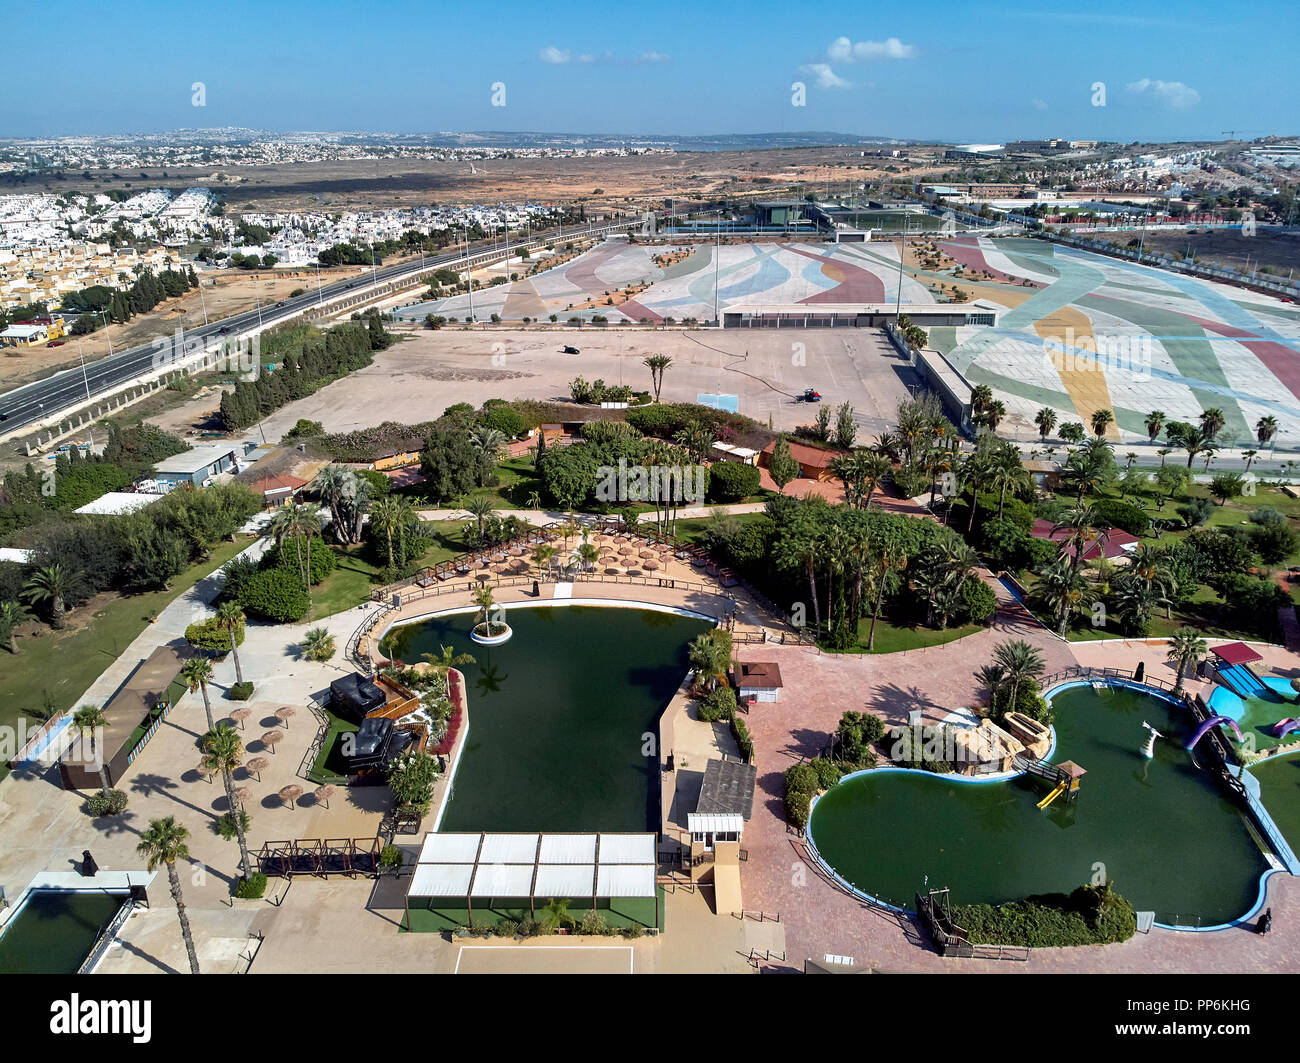 Aerial photography townscape, water park famous popular place of Torrevieja. Above view of empty market parking area, square for transport. Torrevieja - Stock Image